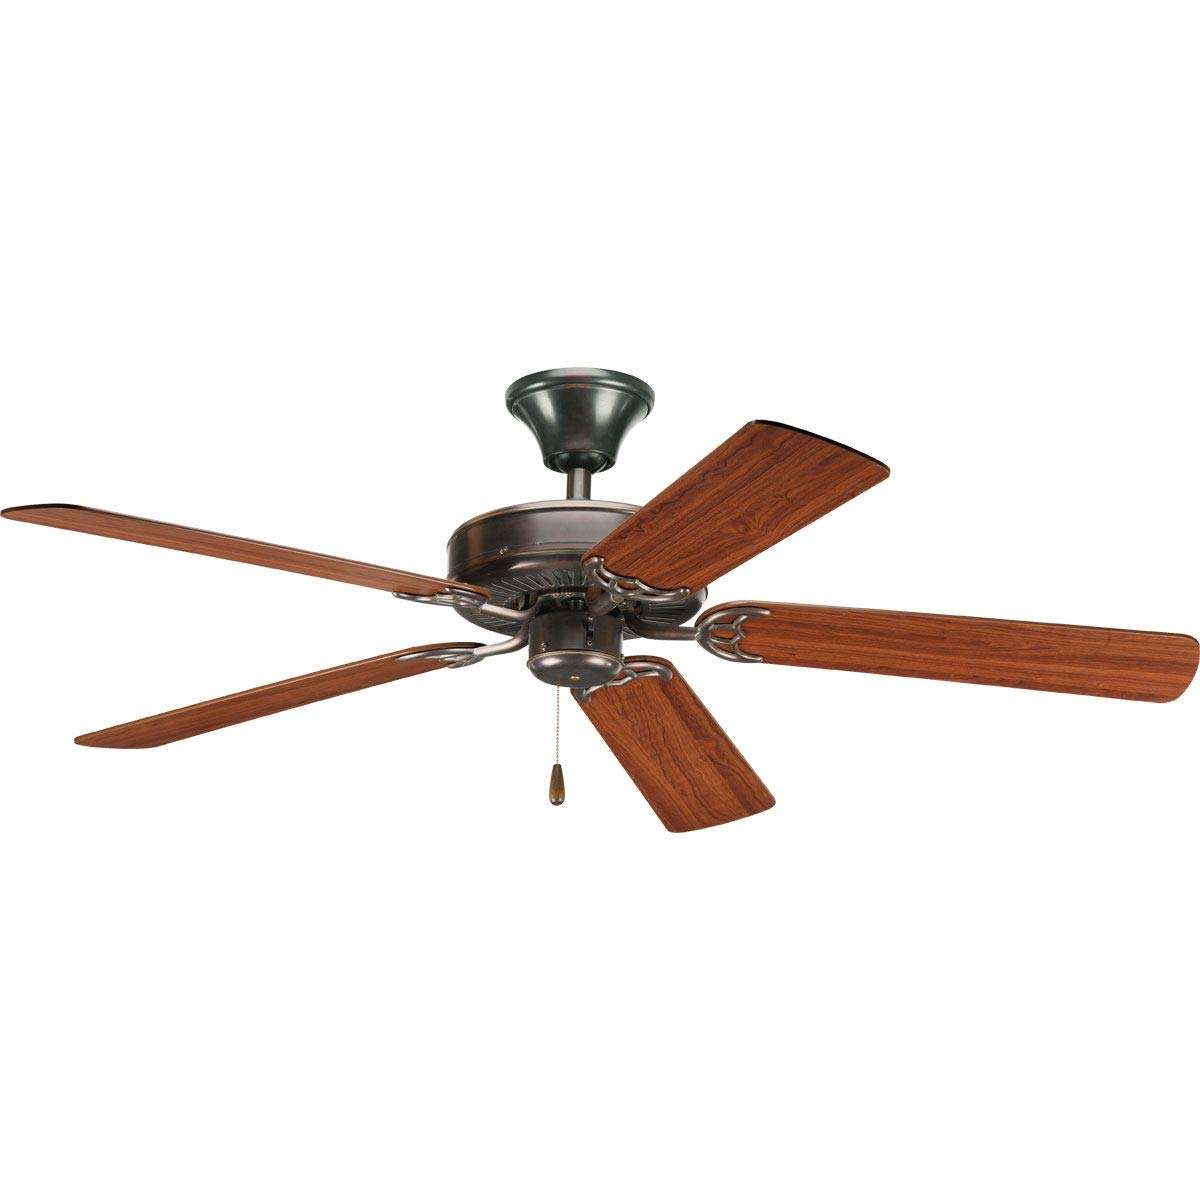 Progress Lighting P2501-20 52-Inch Fan with 5 Blades and 3-Speed Reversible Motor with Reversible Medium Cherry or Classic Walnut Blades, Antique Bronze